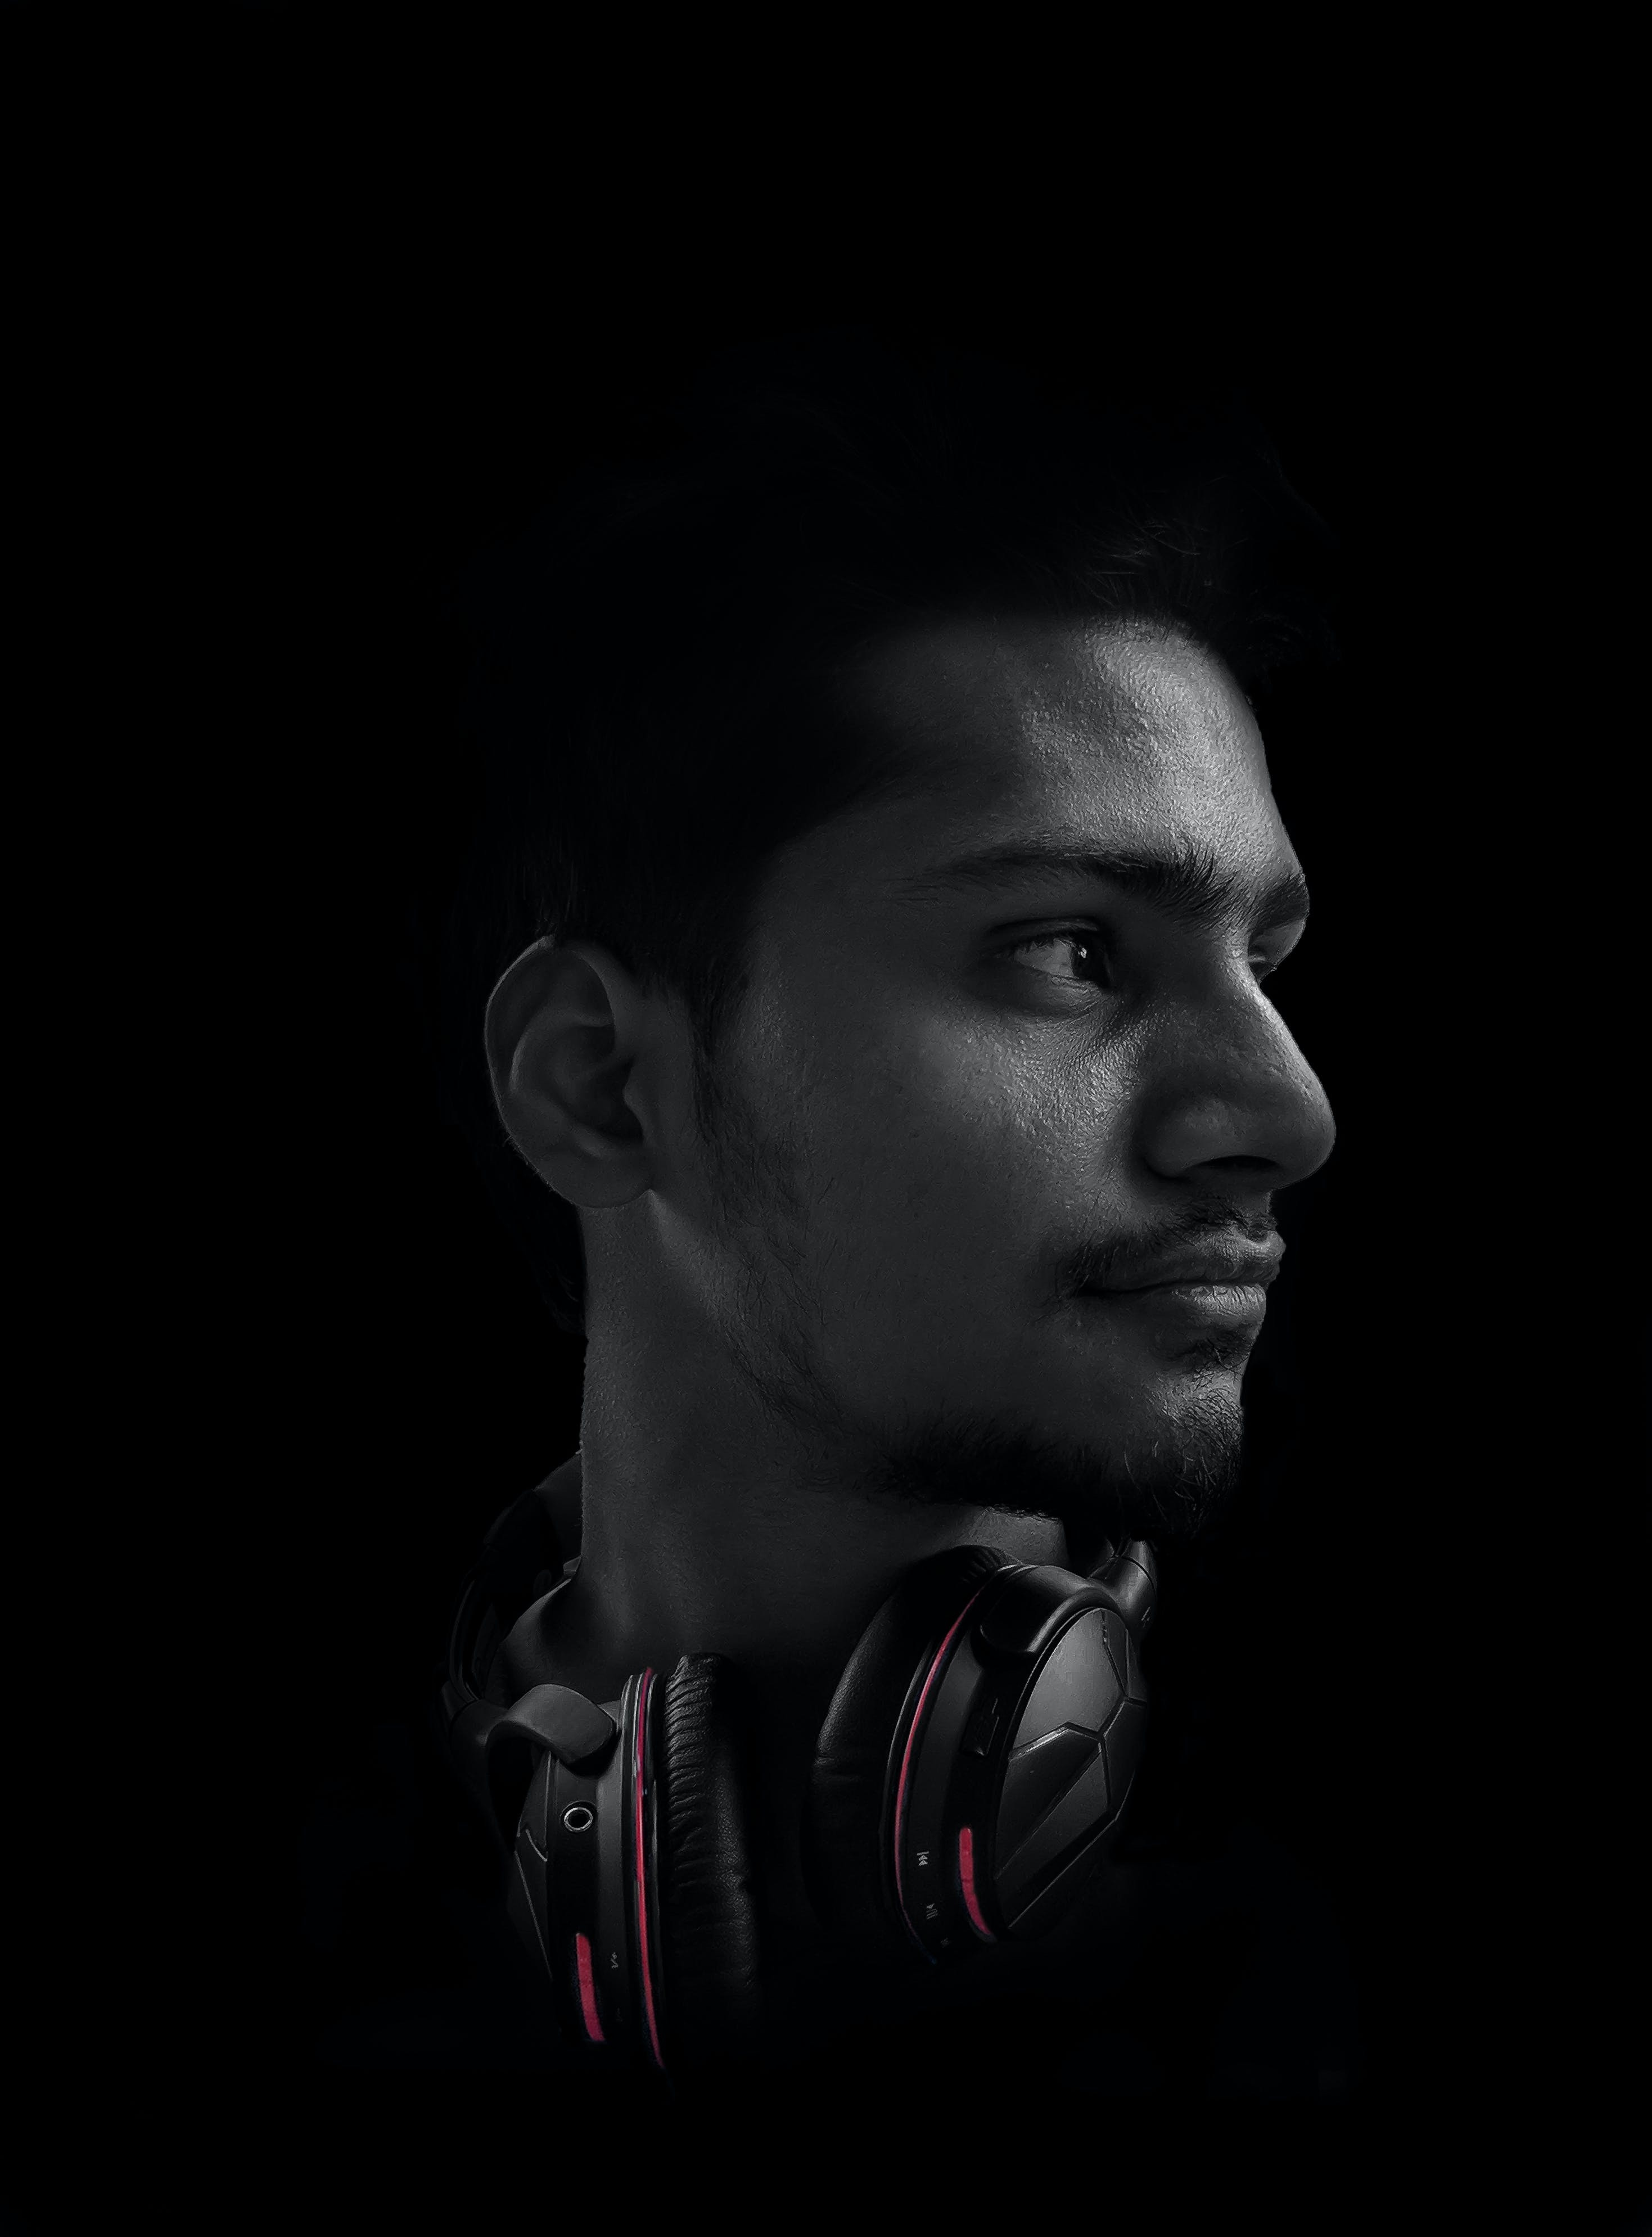 Photo of Man Wearing Black and Red Headphones